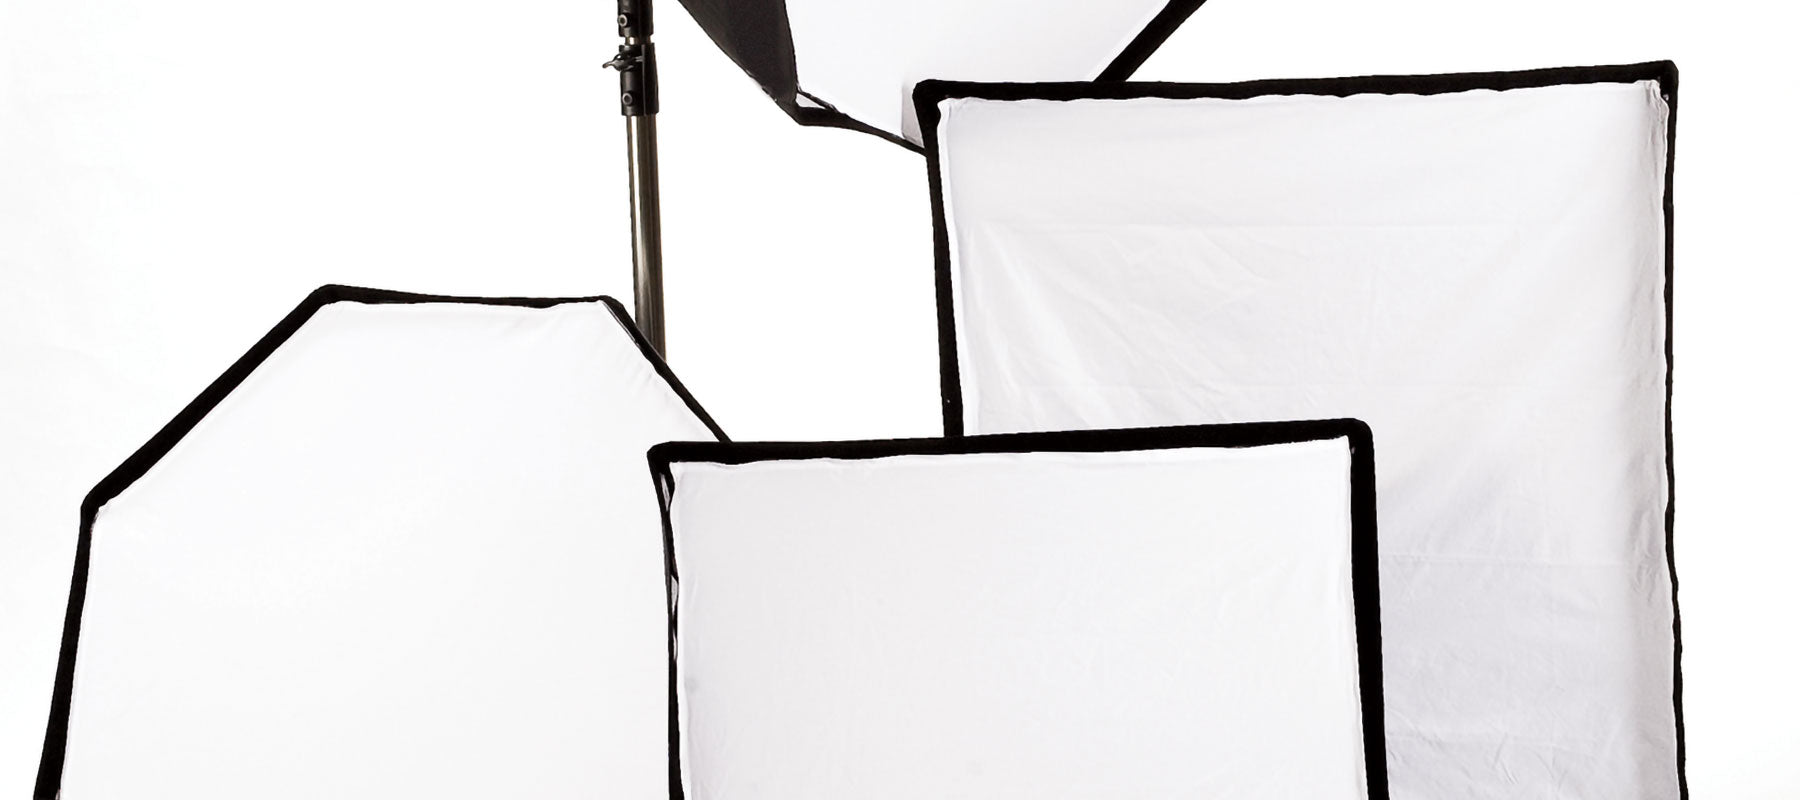 Softbox Lights